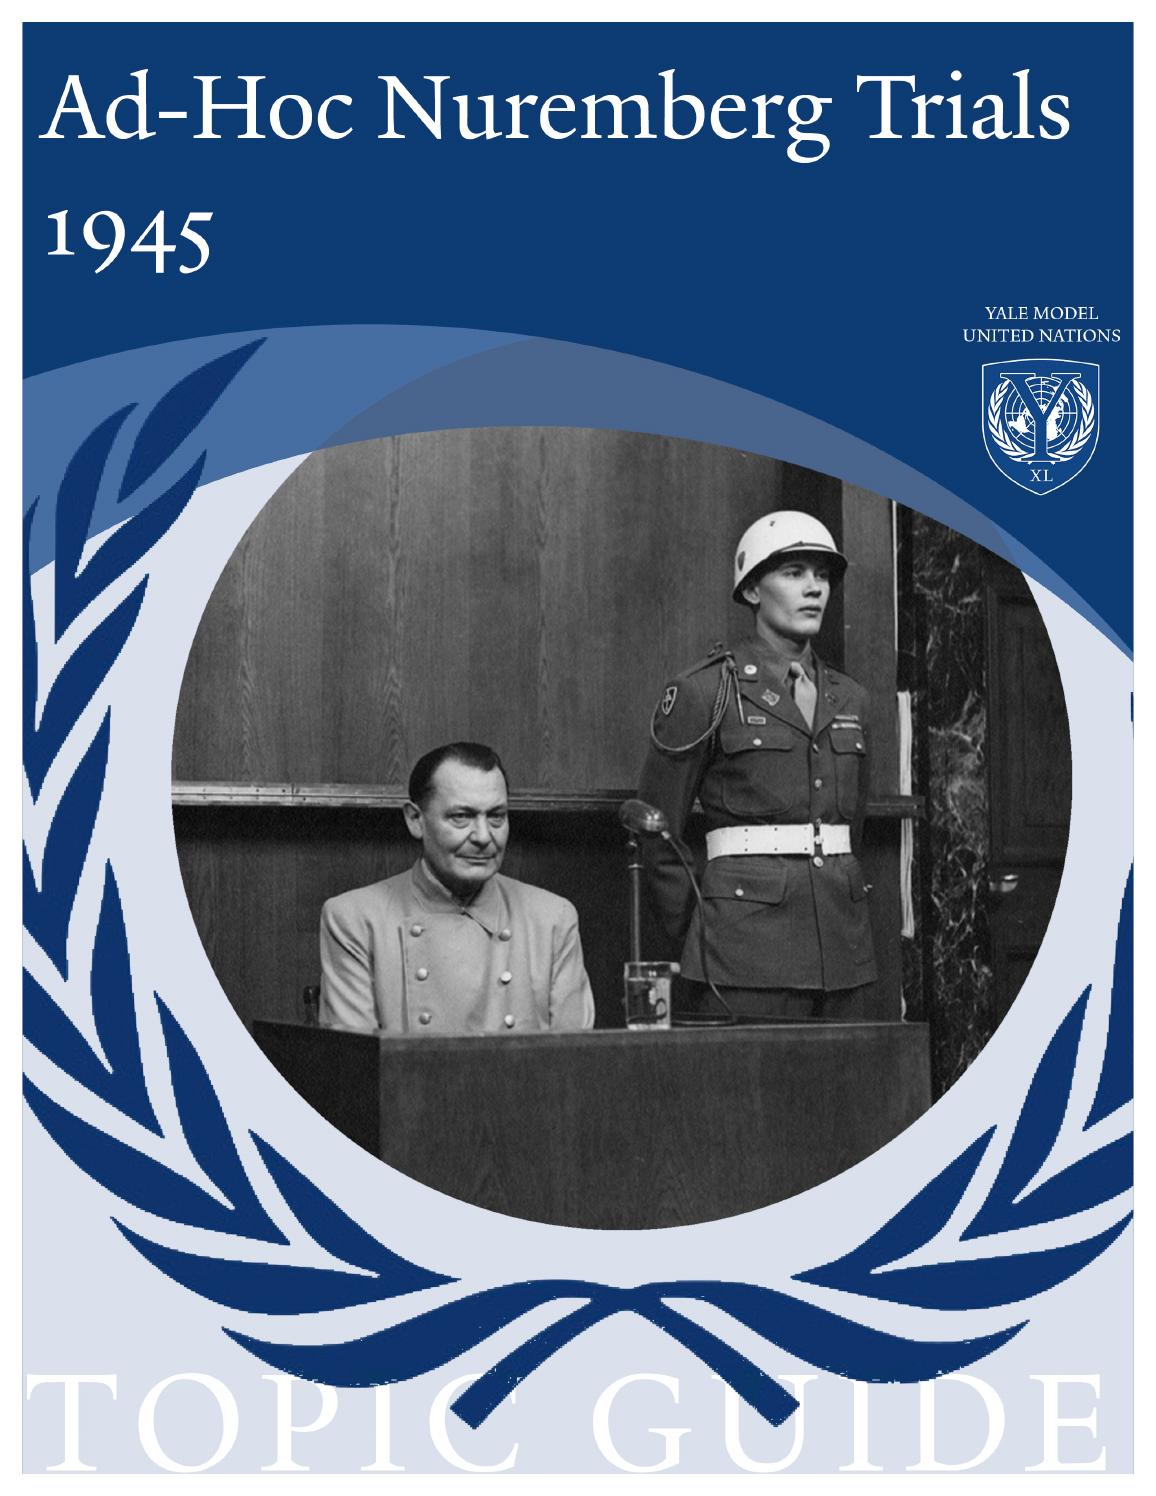 nuremberg trials topic guide by yale model united nations